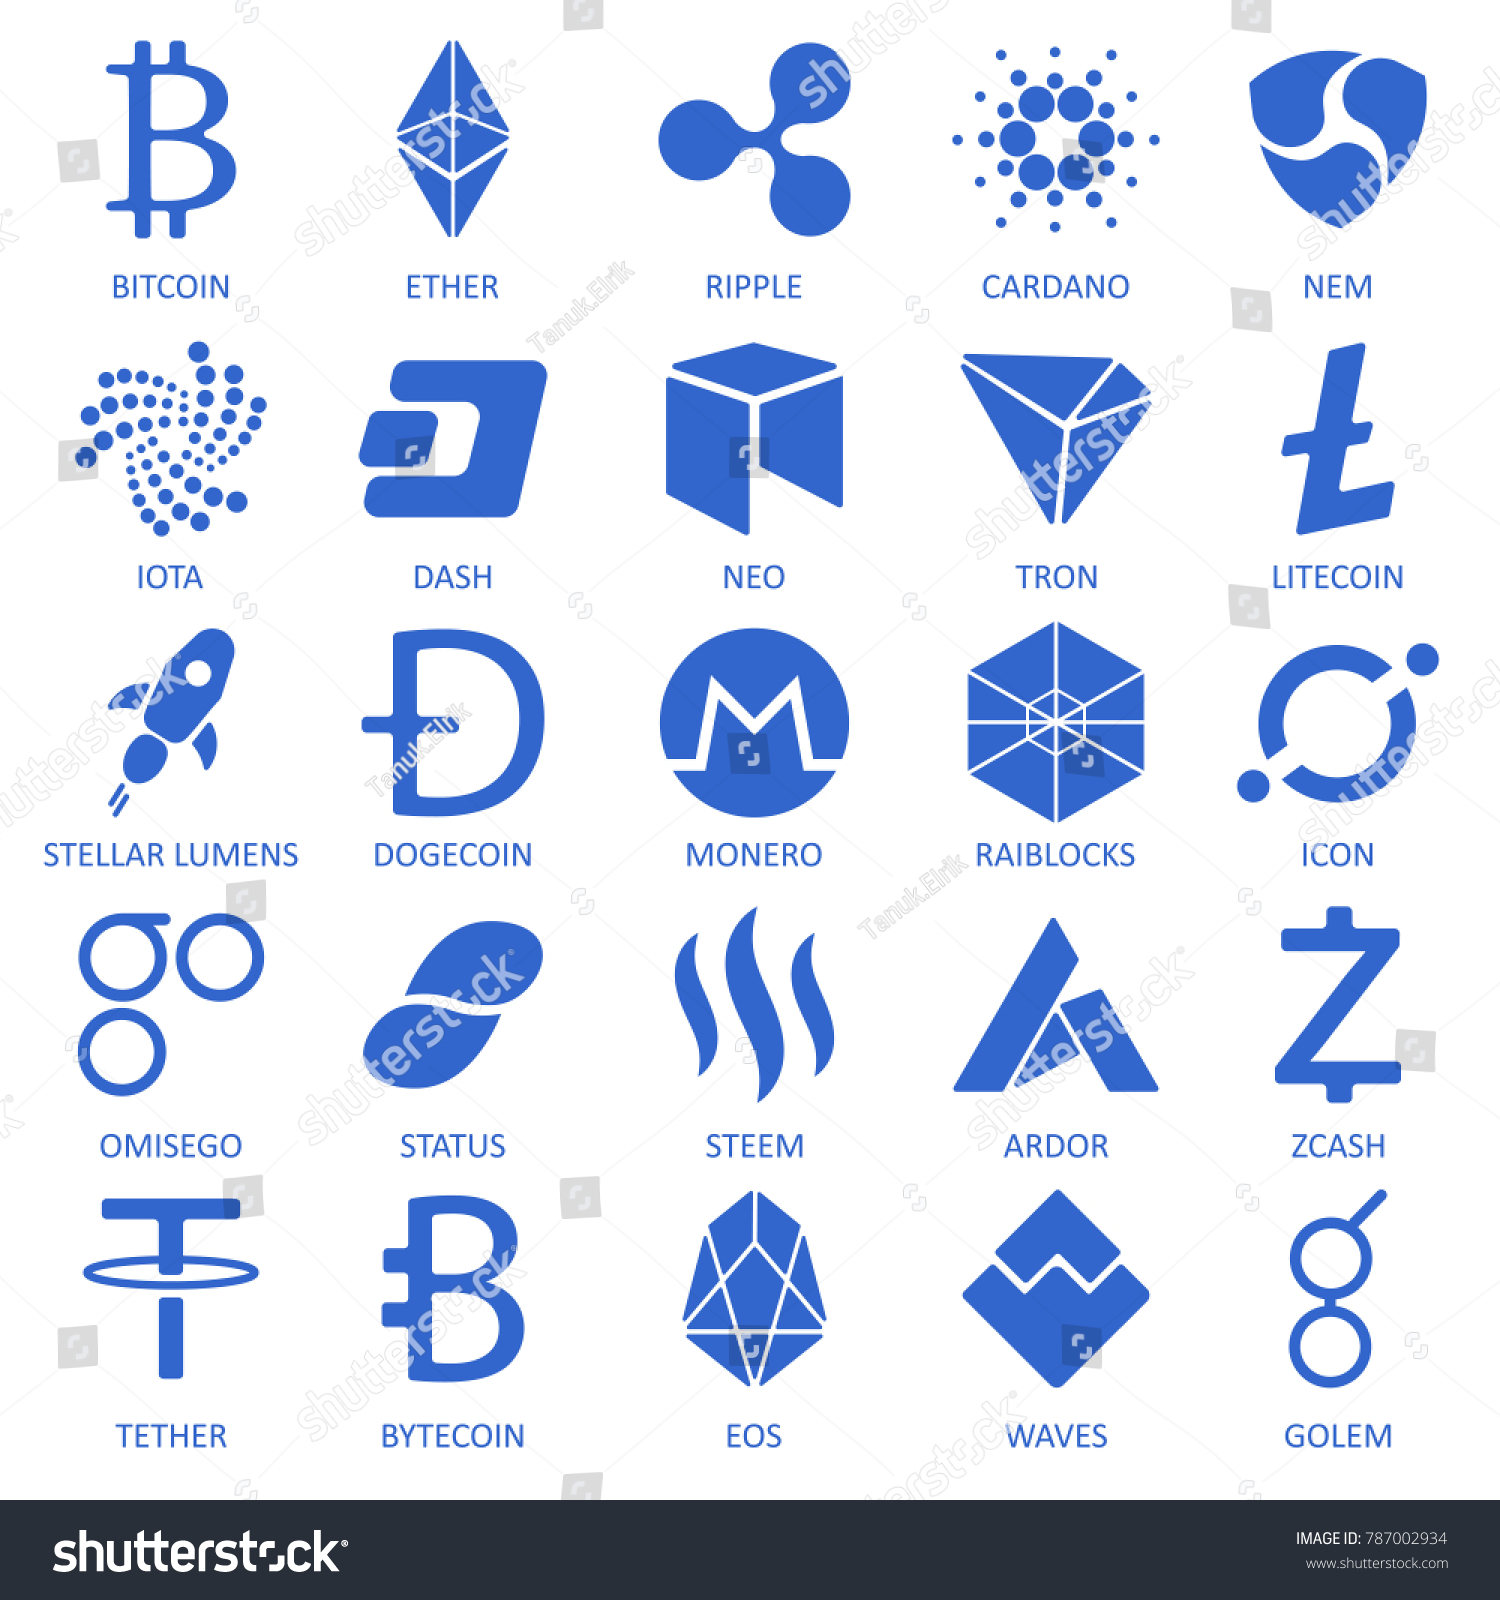 Cryptocurrency symbols for facebook golf live betting